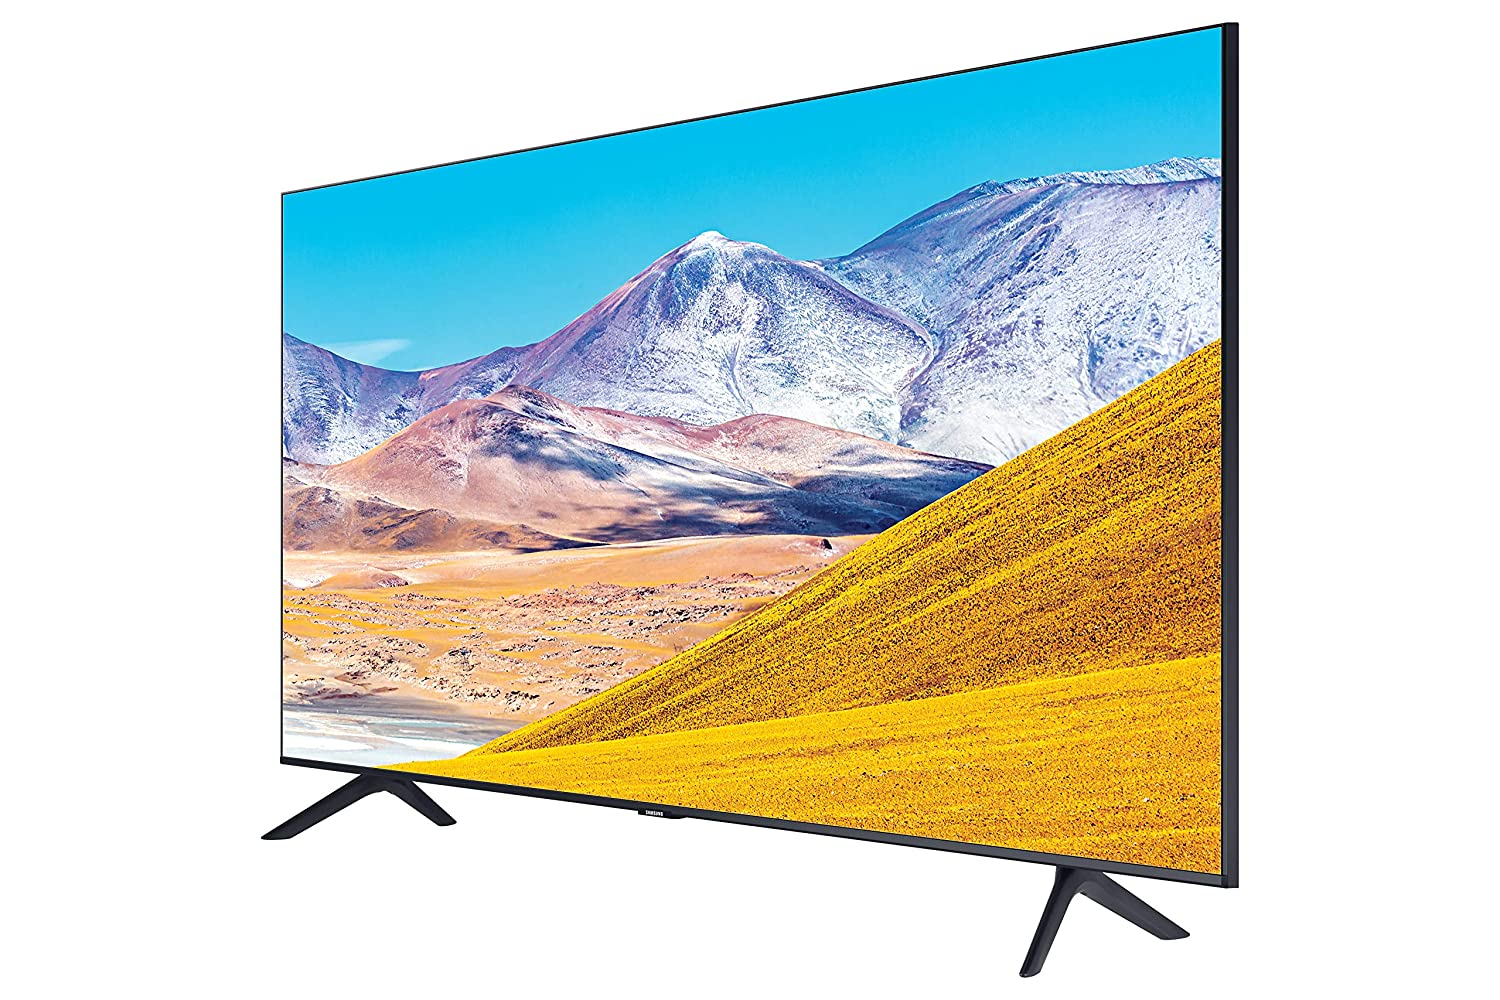 Samsung UA65TU8000KXXL - Best 65 inch TVs in India - Affordable Quality